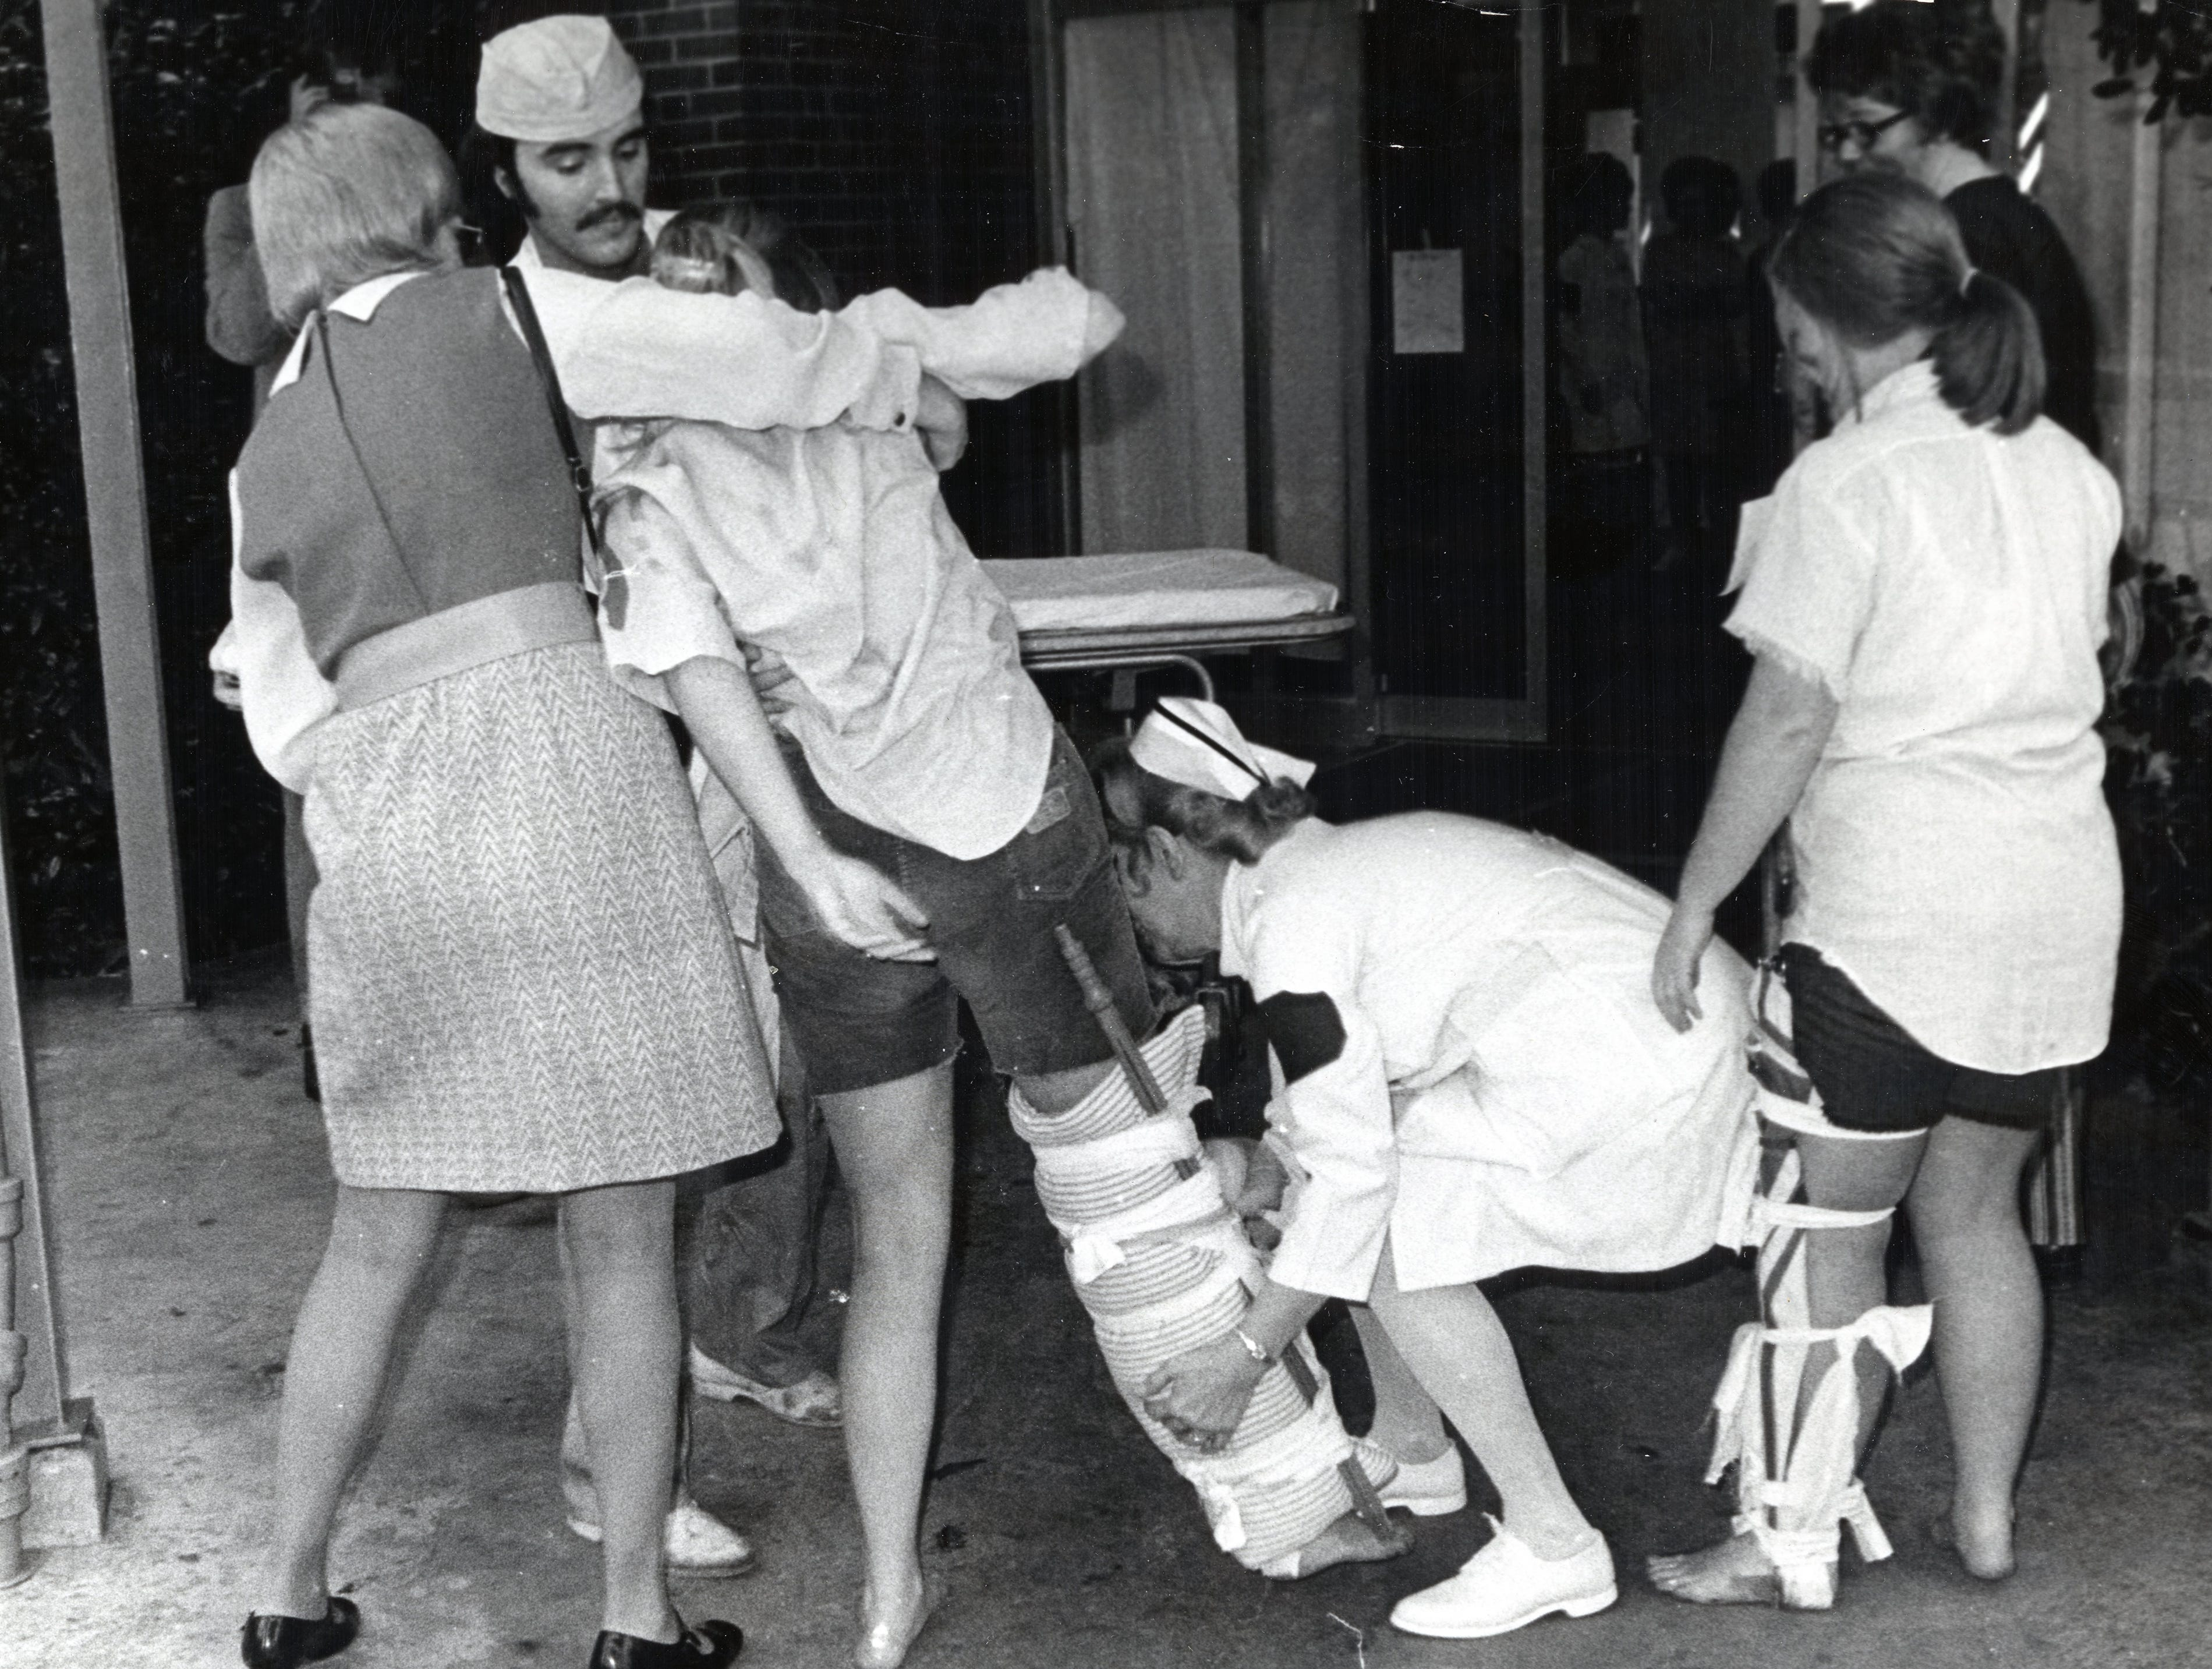 An emergency room mock test run at St. Mary's in December 1971.